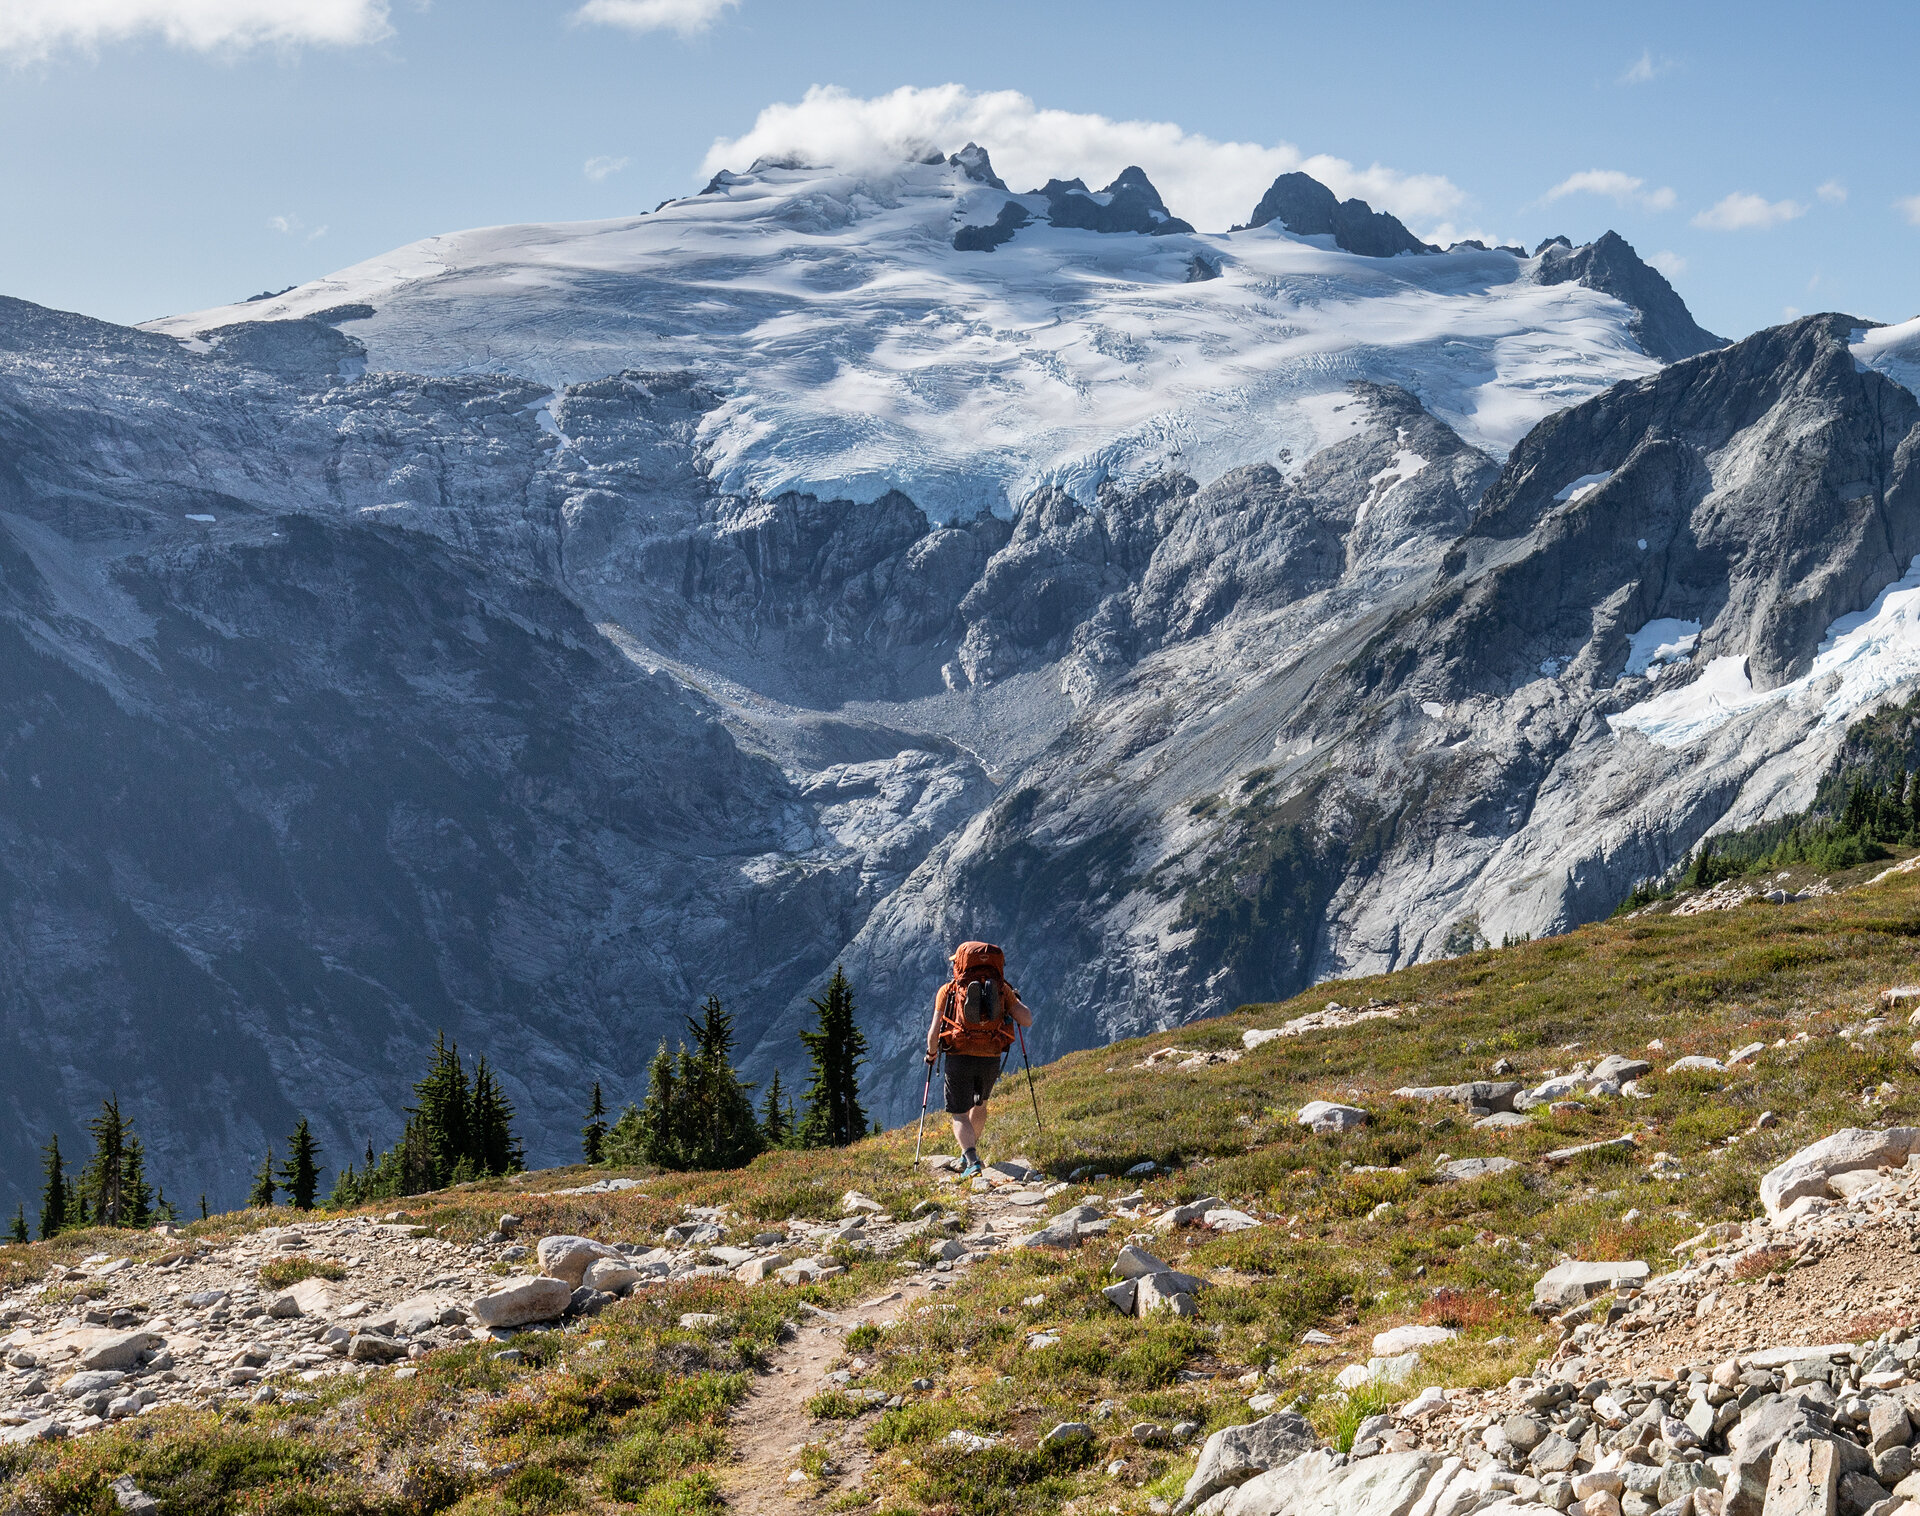 Alex descending toward Whatcom Pass with Mount Challenger in the background